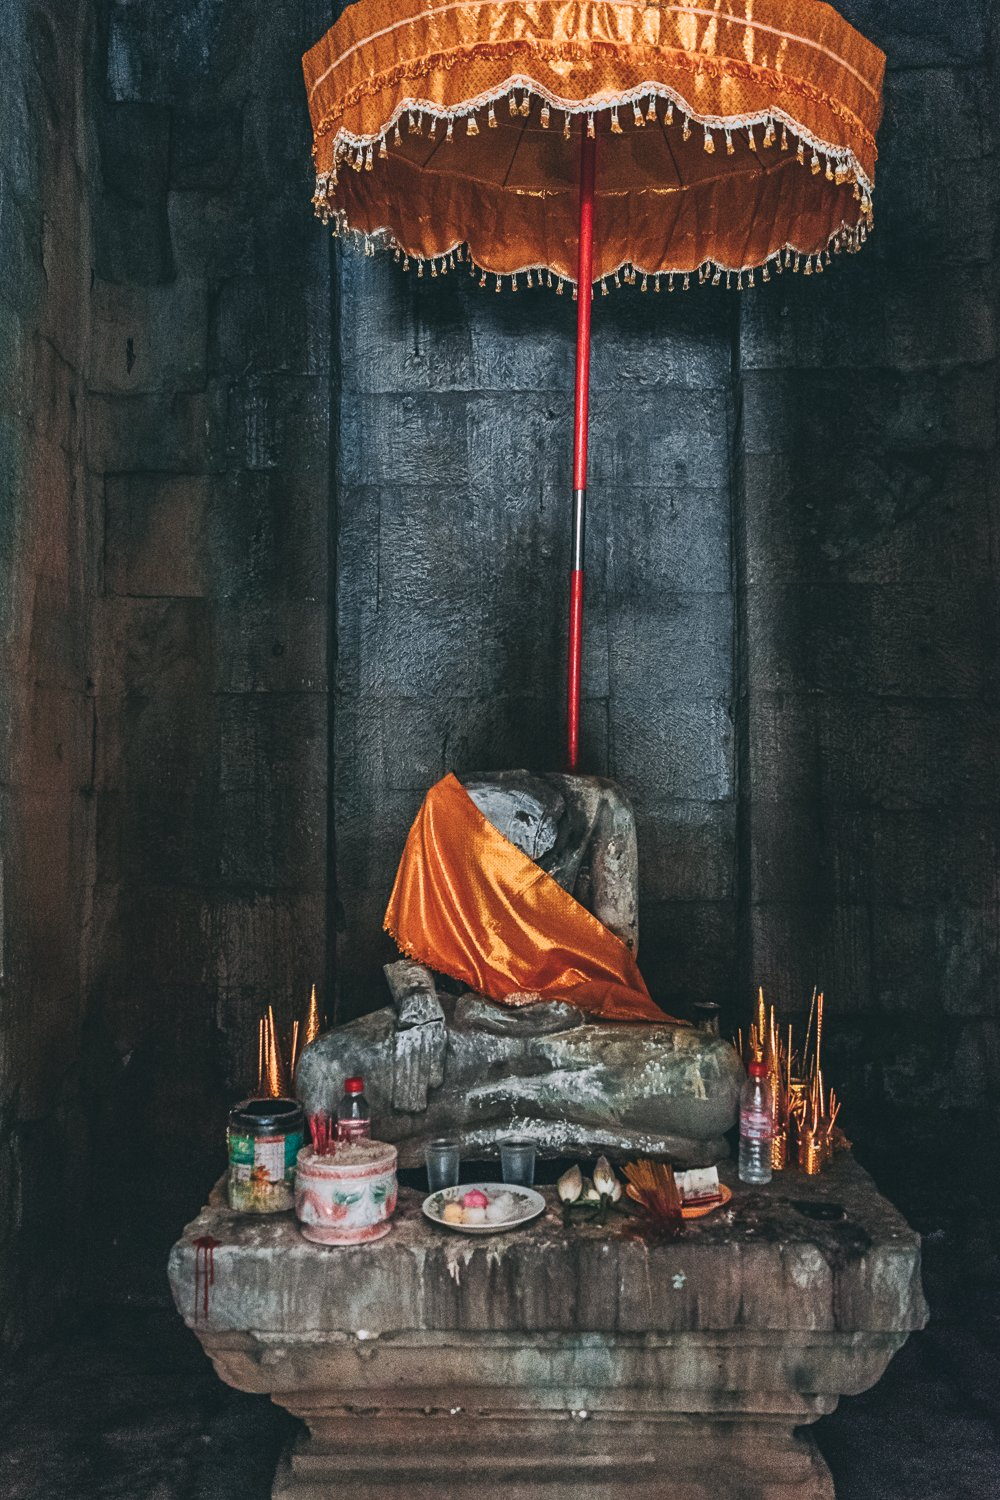 visiter temple angkor trace empire disparu bouddha coupe cambodge asie blog voyage photographie